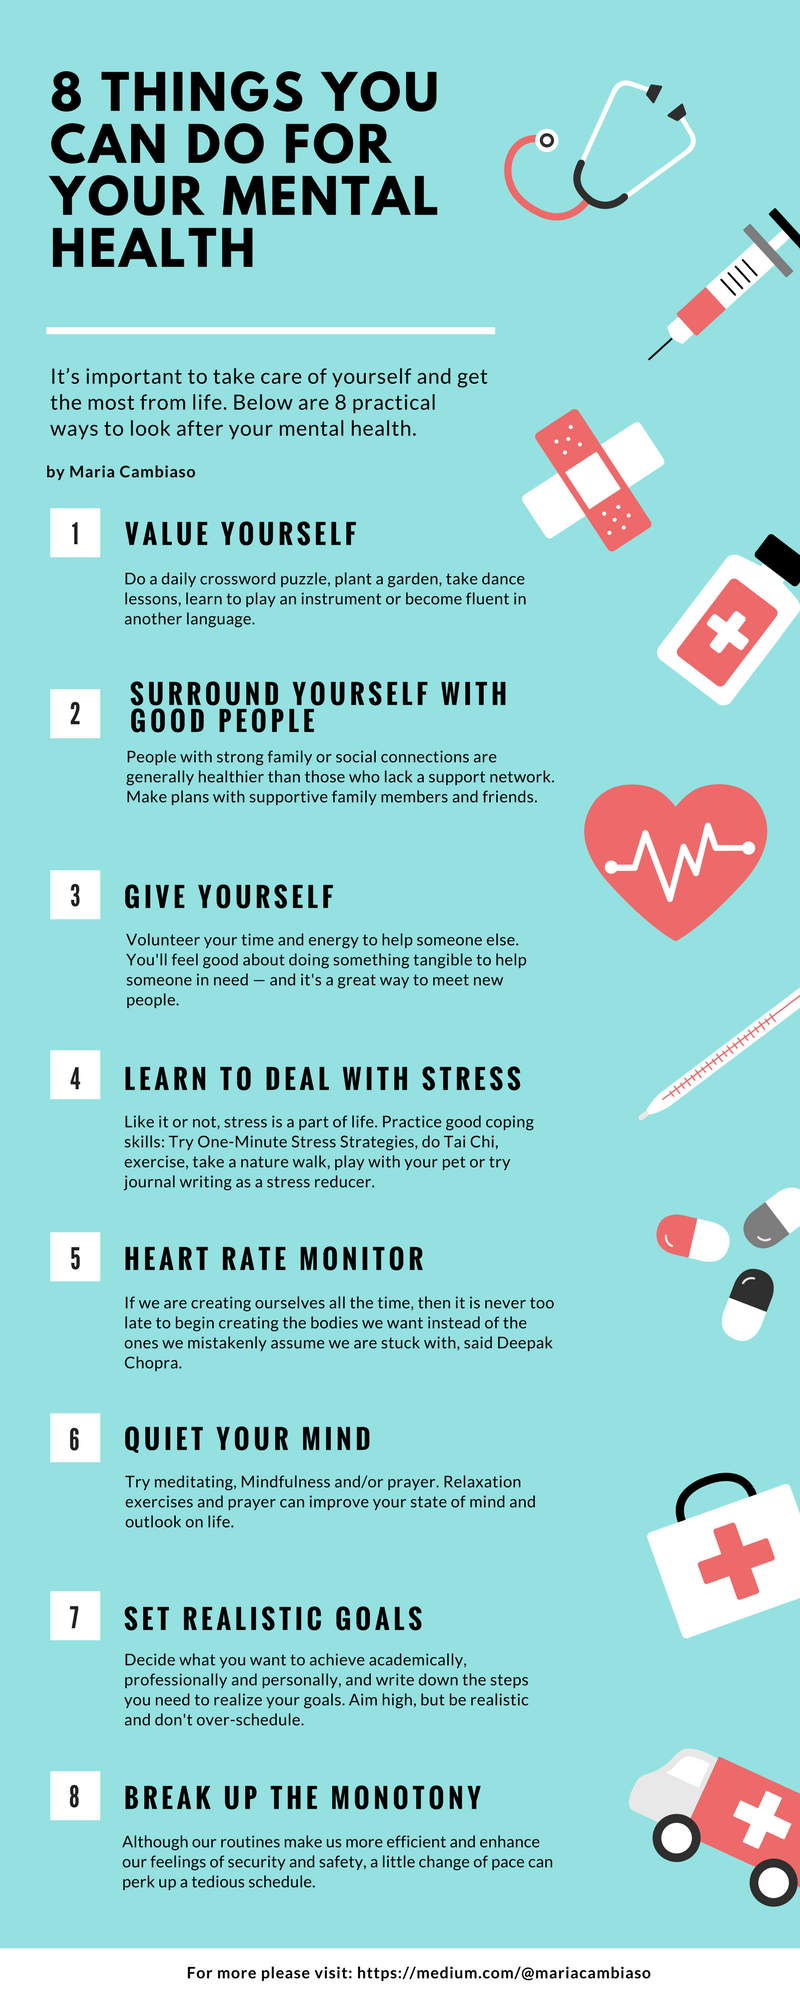 Maria Cambiaso How To Take Care Of Your Mental Health